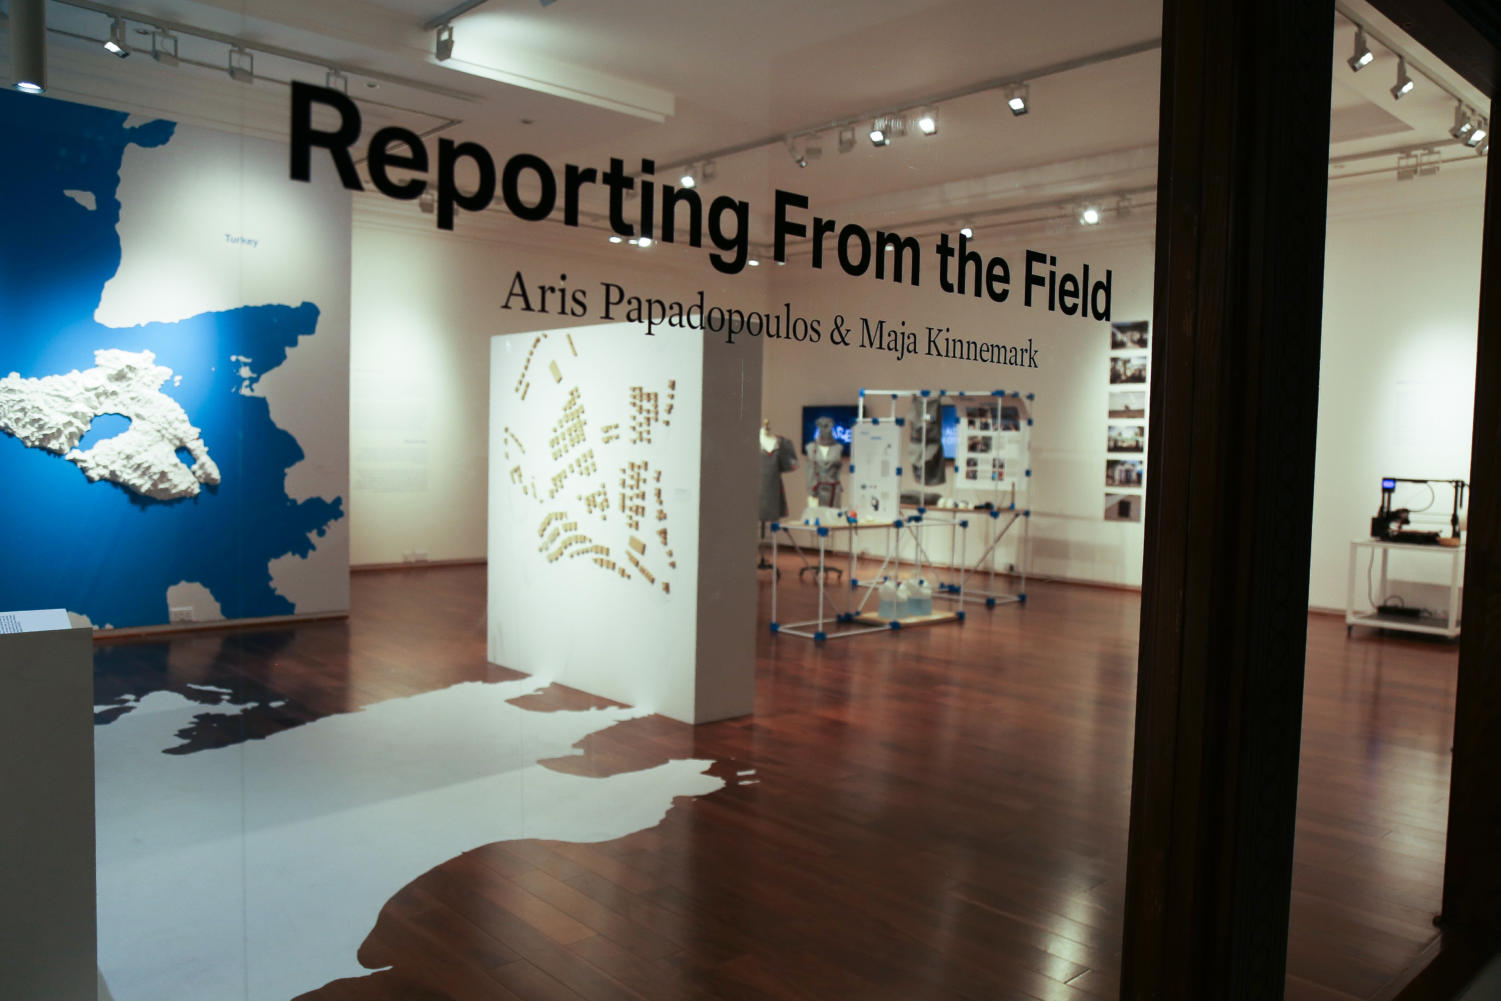 The+exhibition+runs+until+Feb.+24%2C+from+Saturday+to+Thursday%2C+9+a.m.+to+5+p.m.+%0A